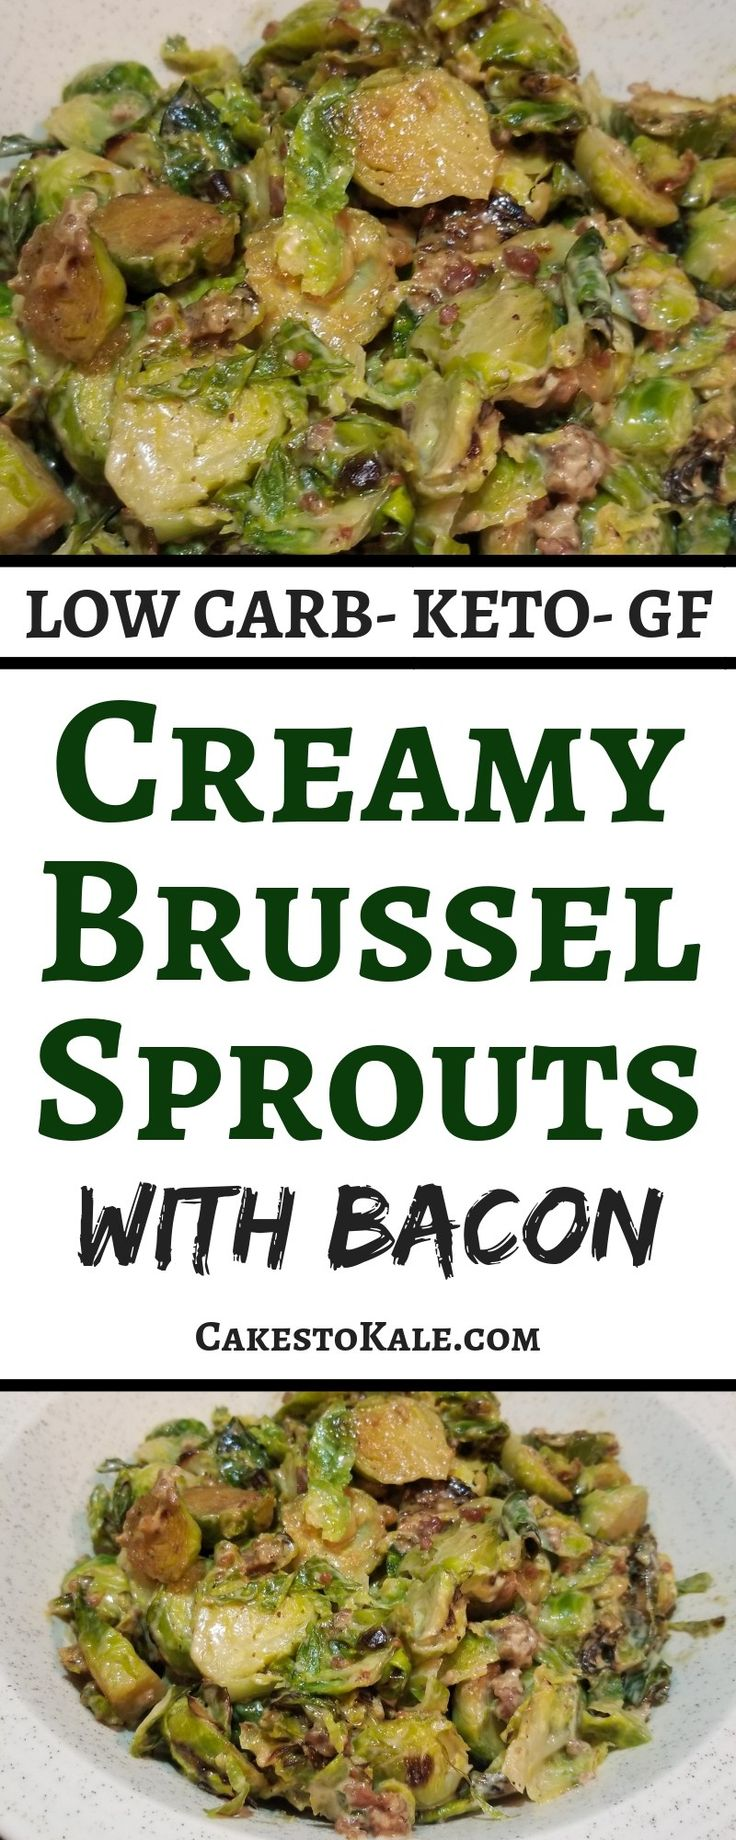 Creamy Brussel Sprouts with Bacon